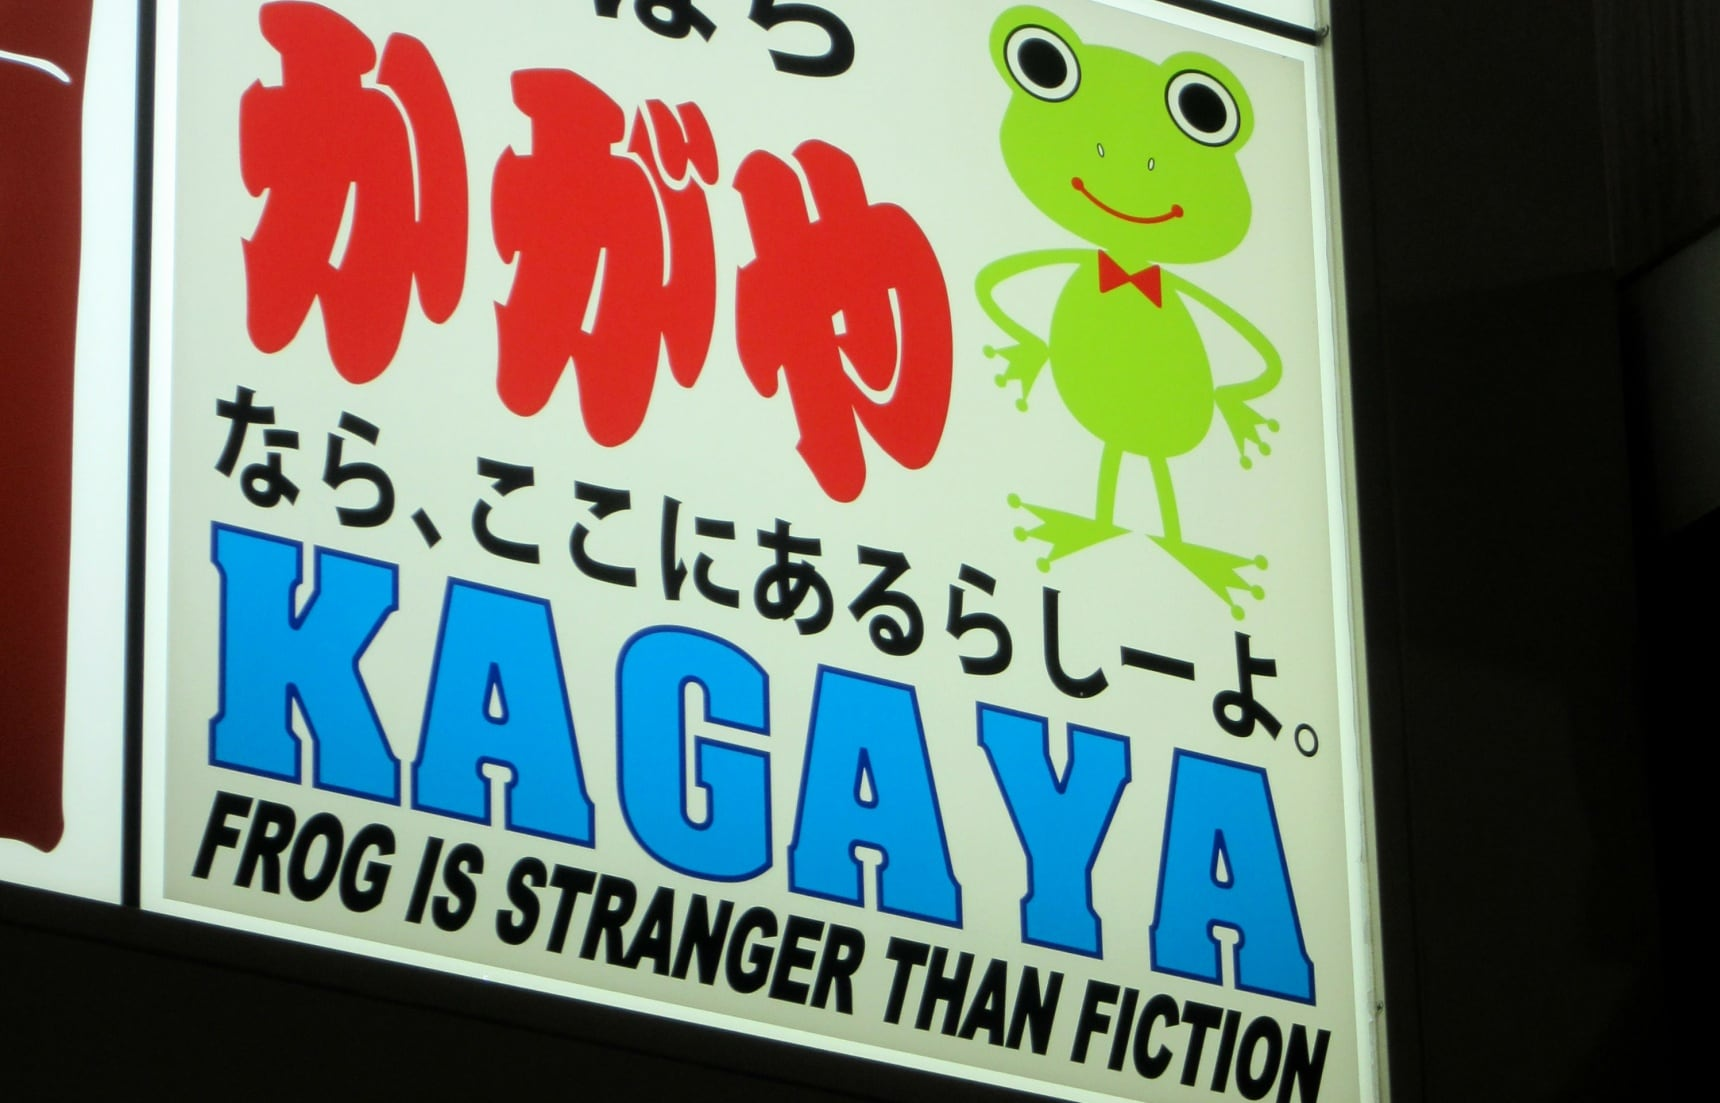 This 'Izakaya' Truly Is Stranger than Fiction!